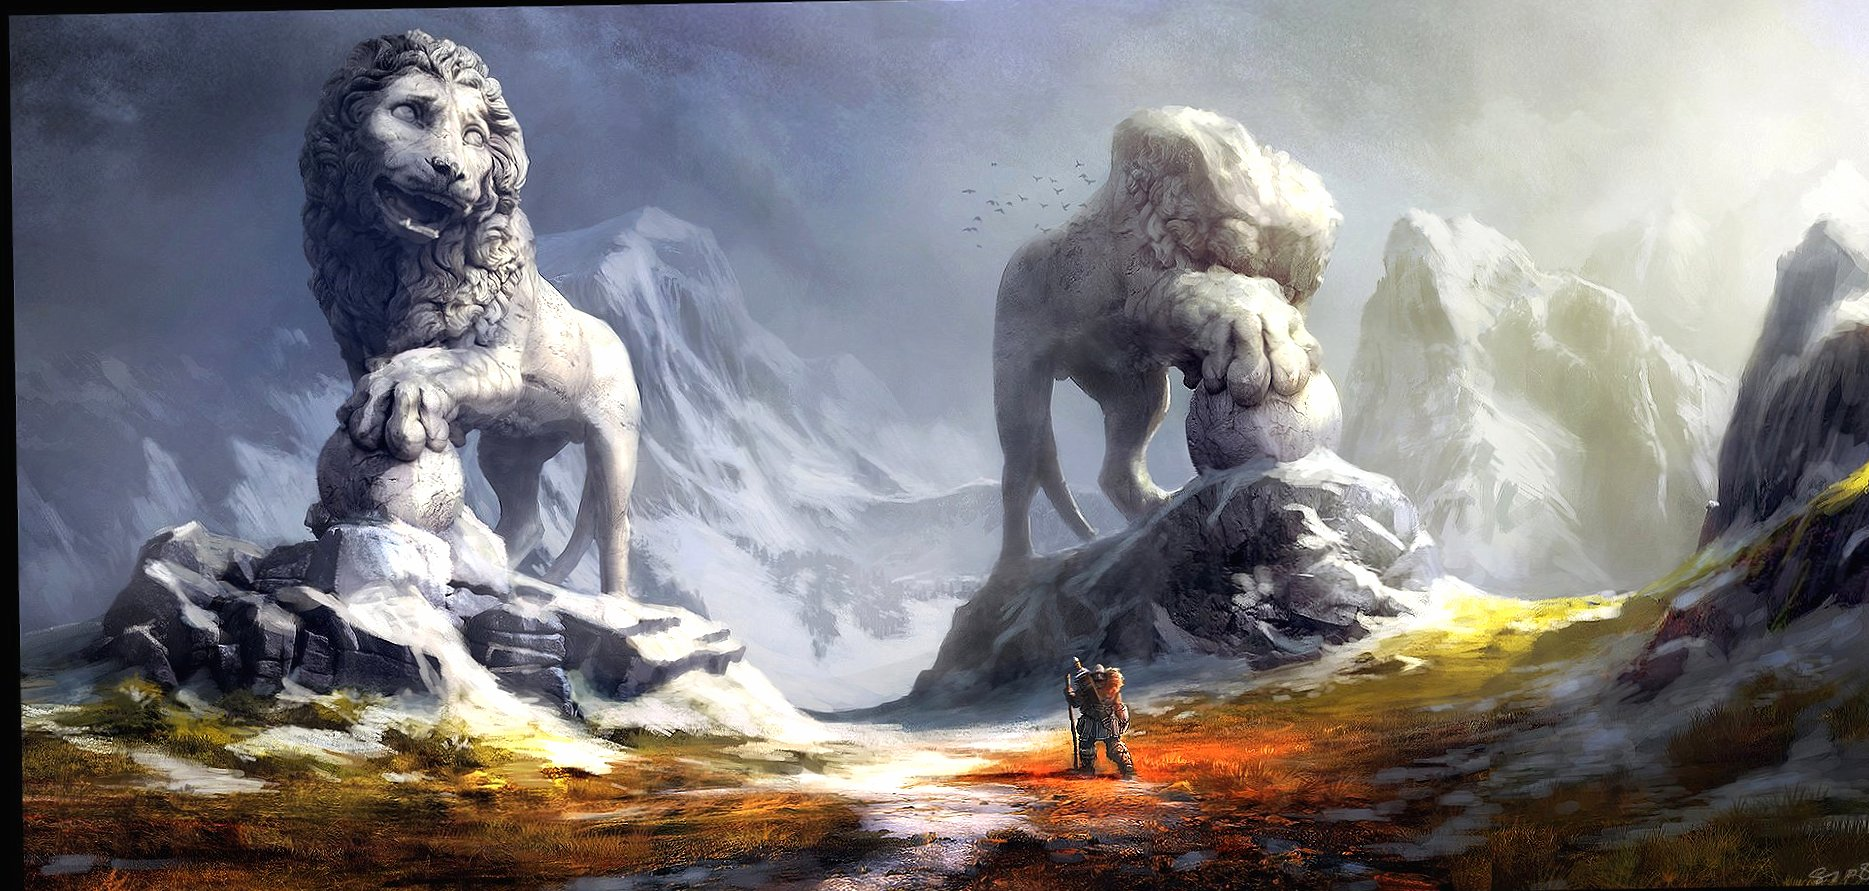 Two lion statues landscape wallpapers HD quality